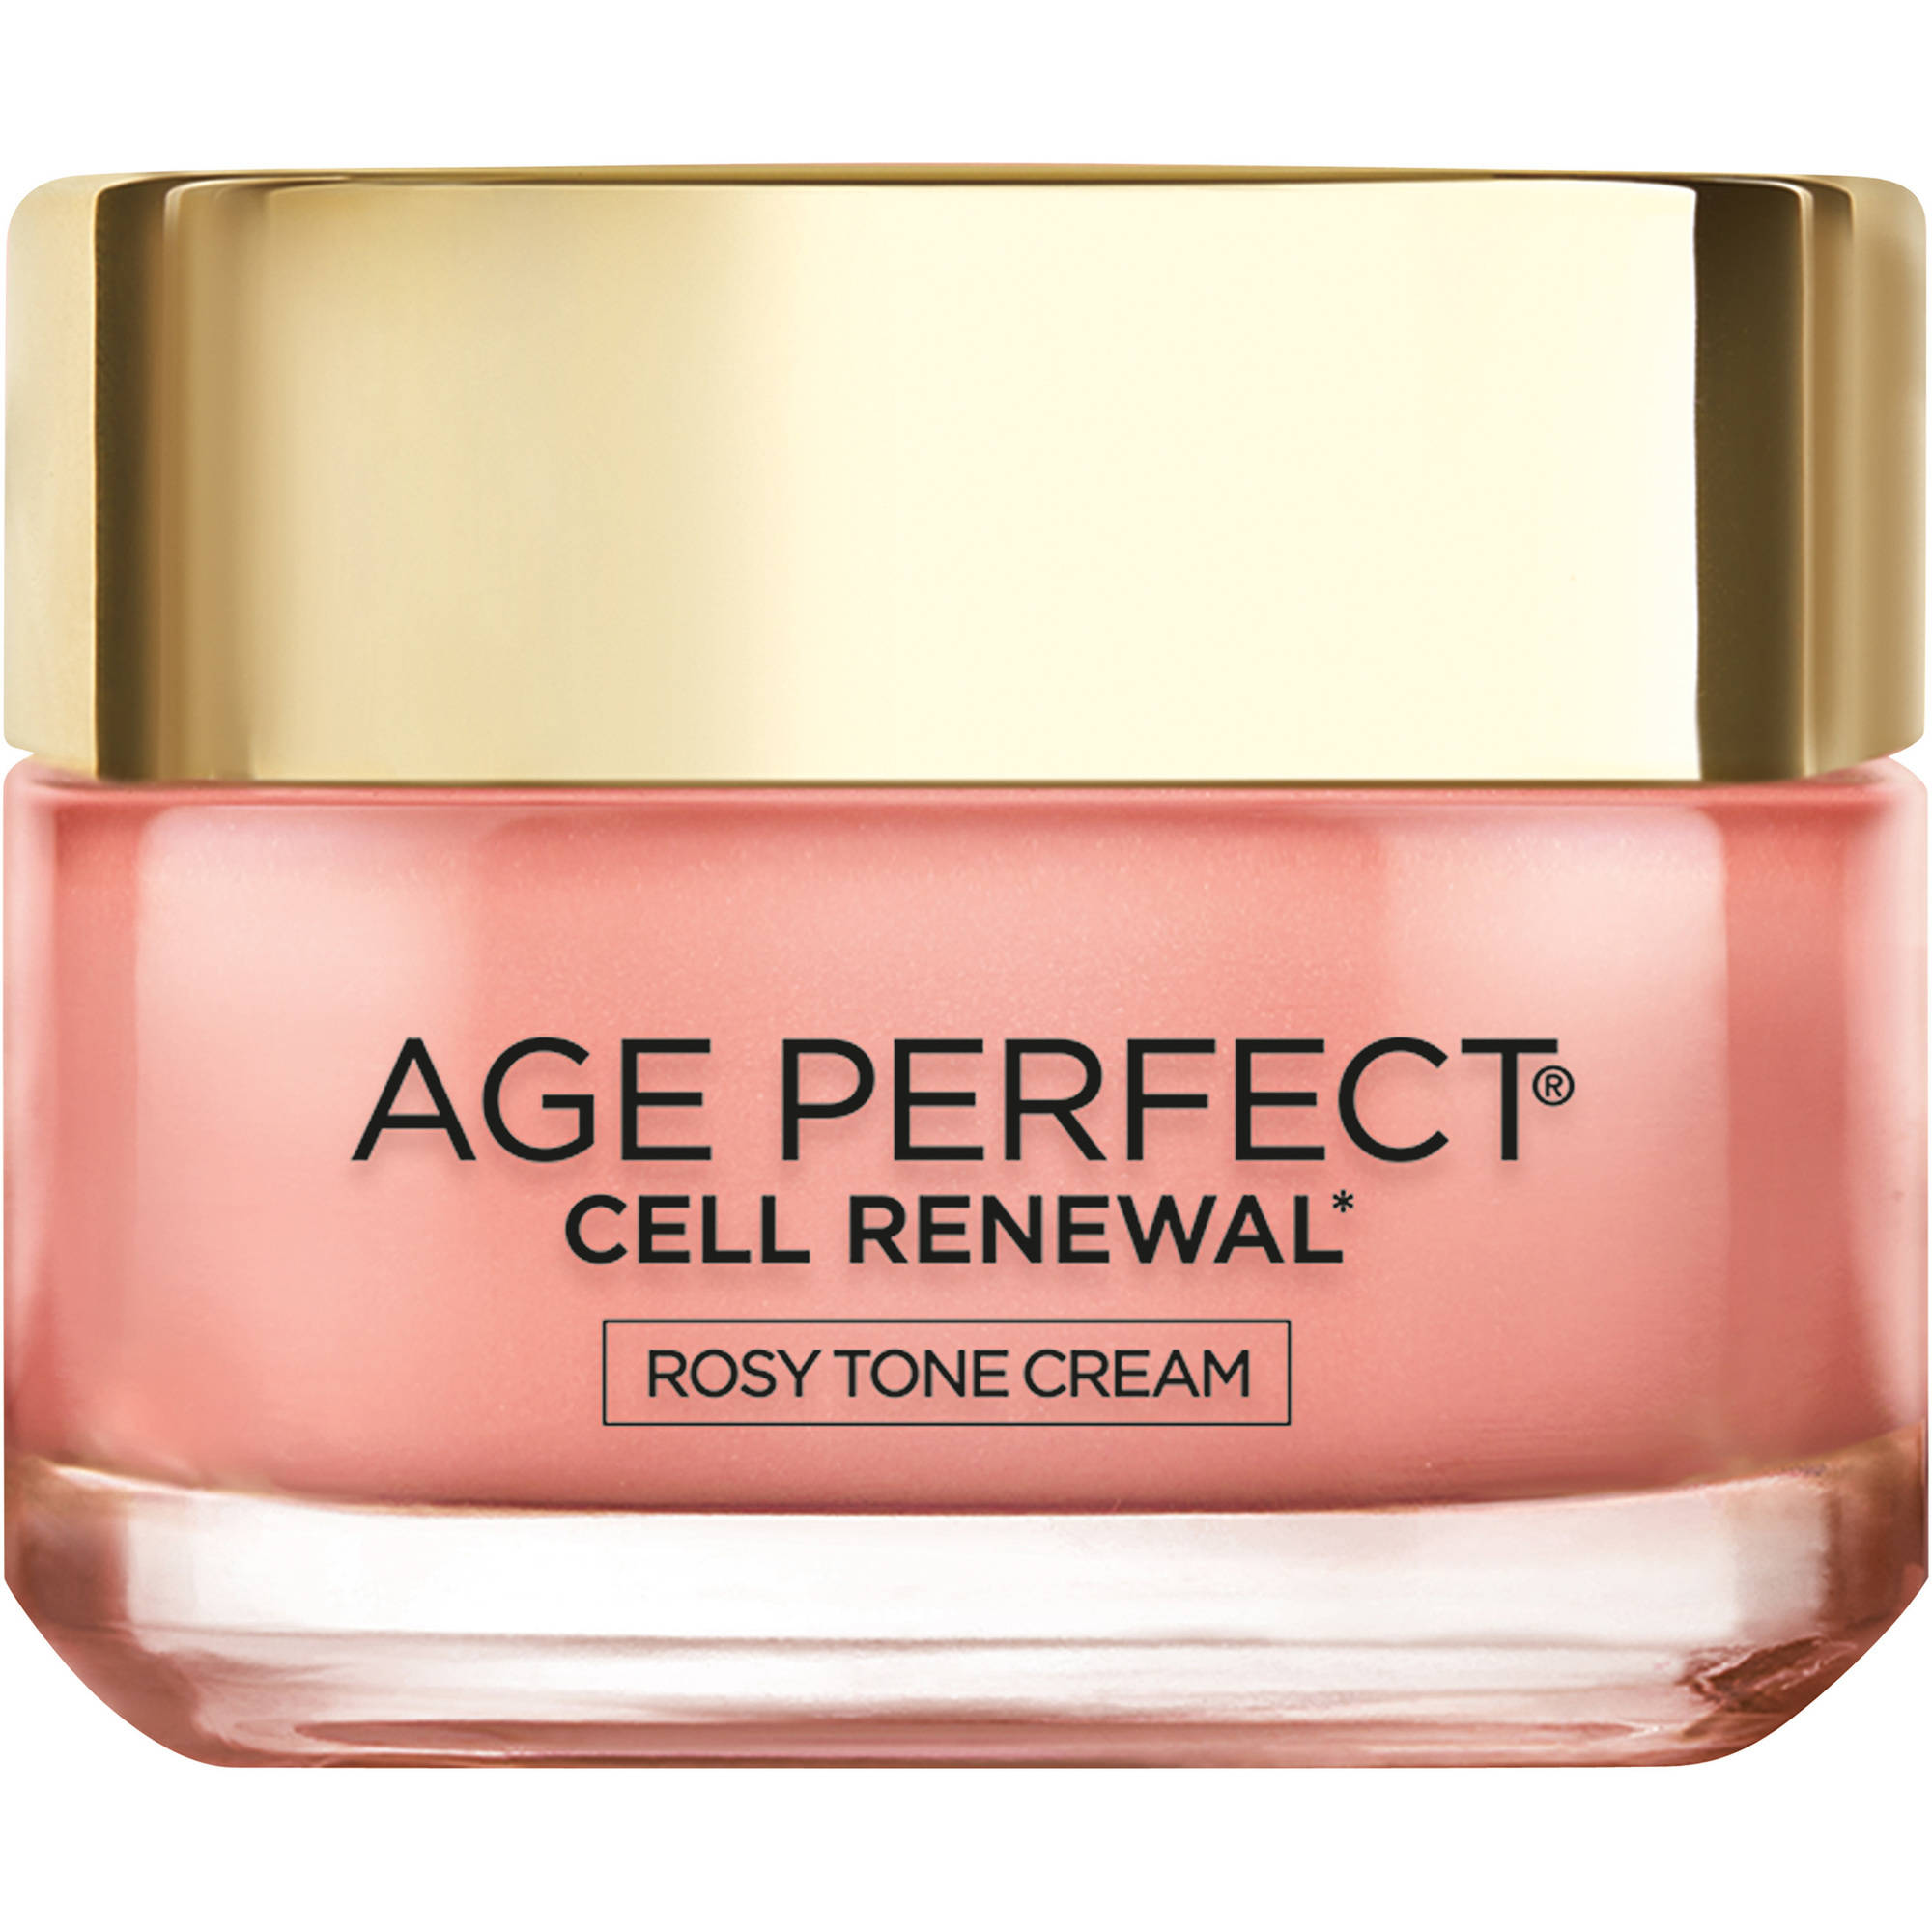 L'Oreal Paris Age Perfect Cell Renewal Rosy Tone Cream Face Moisturizer , 1.7oz